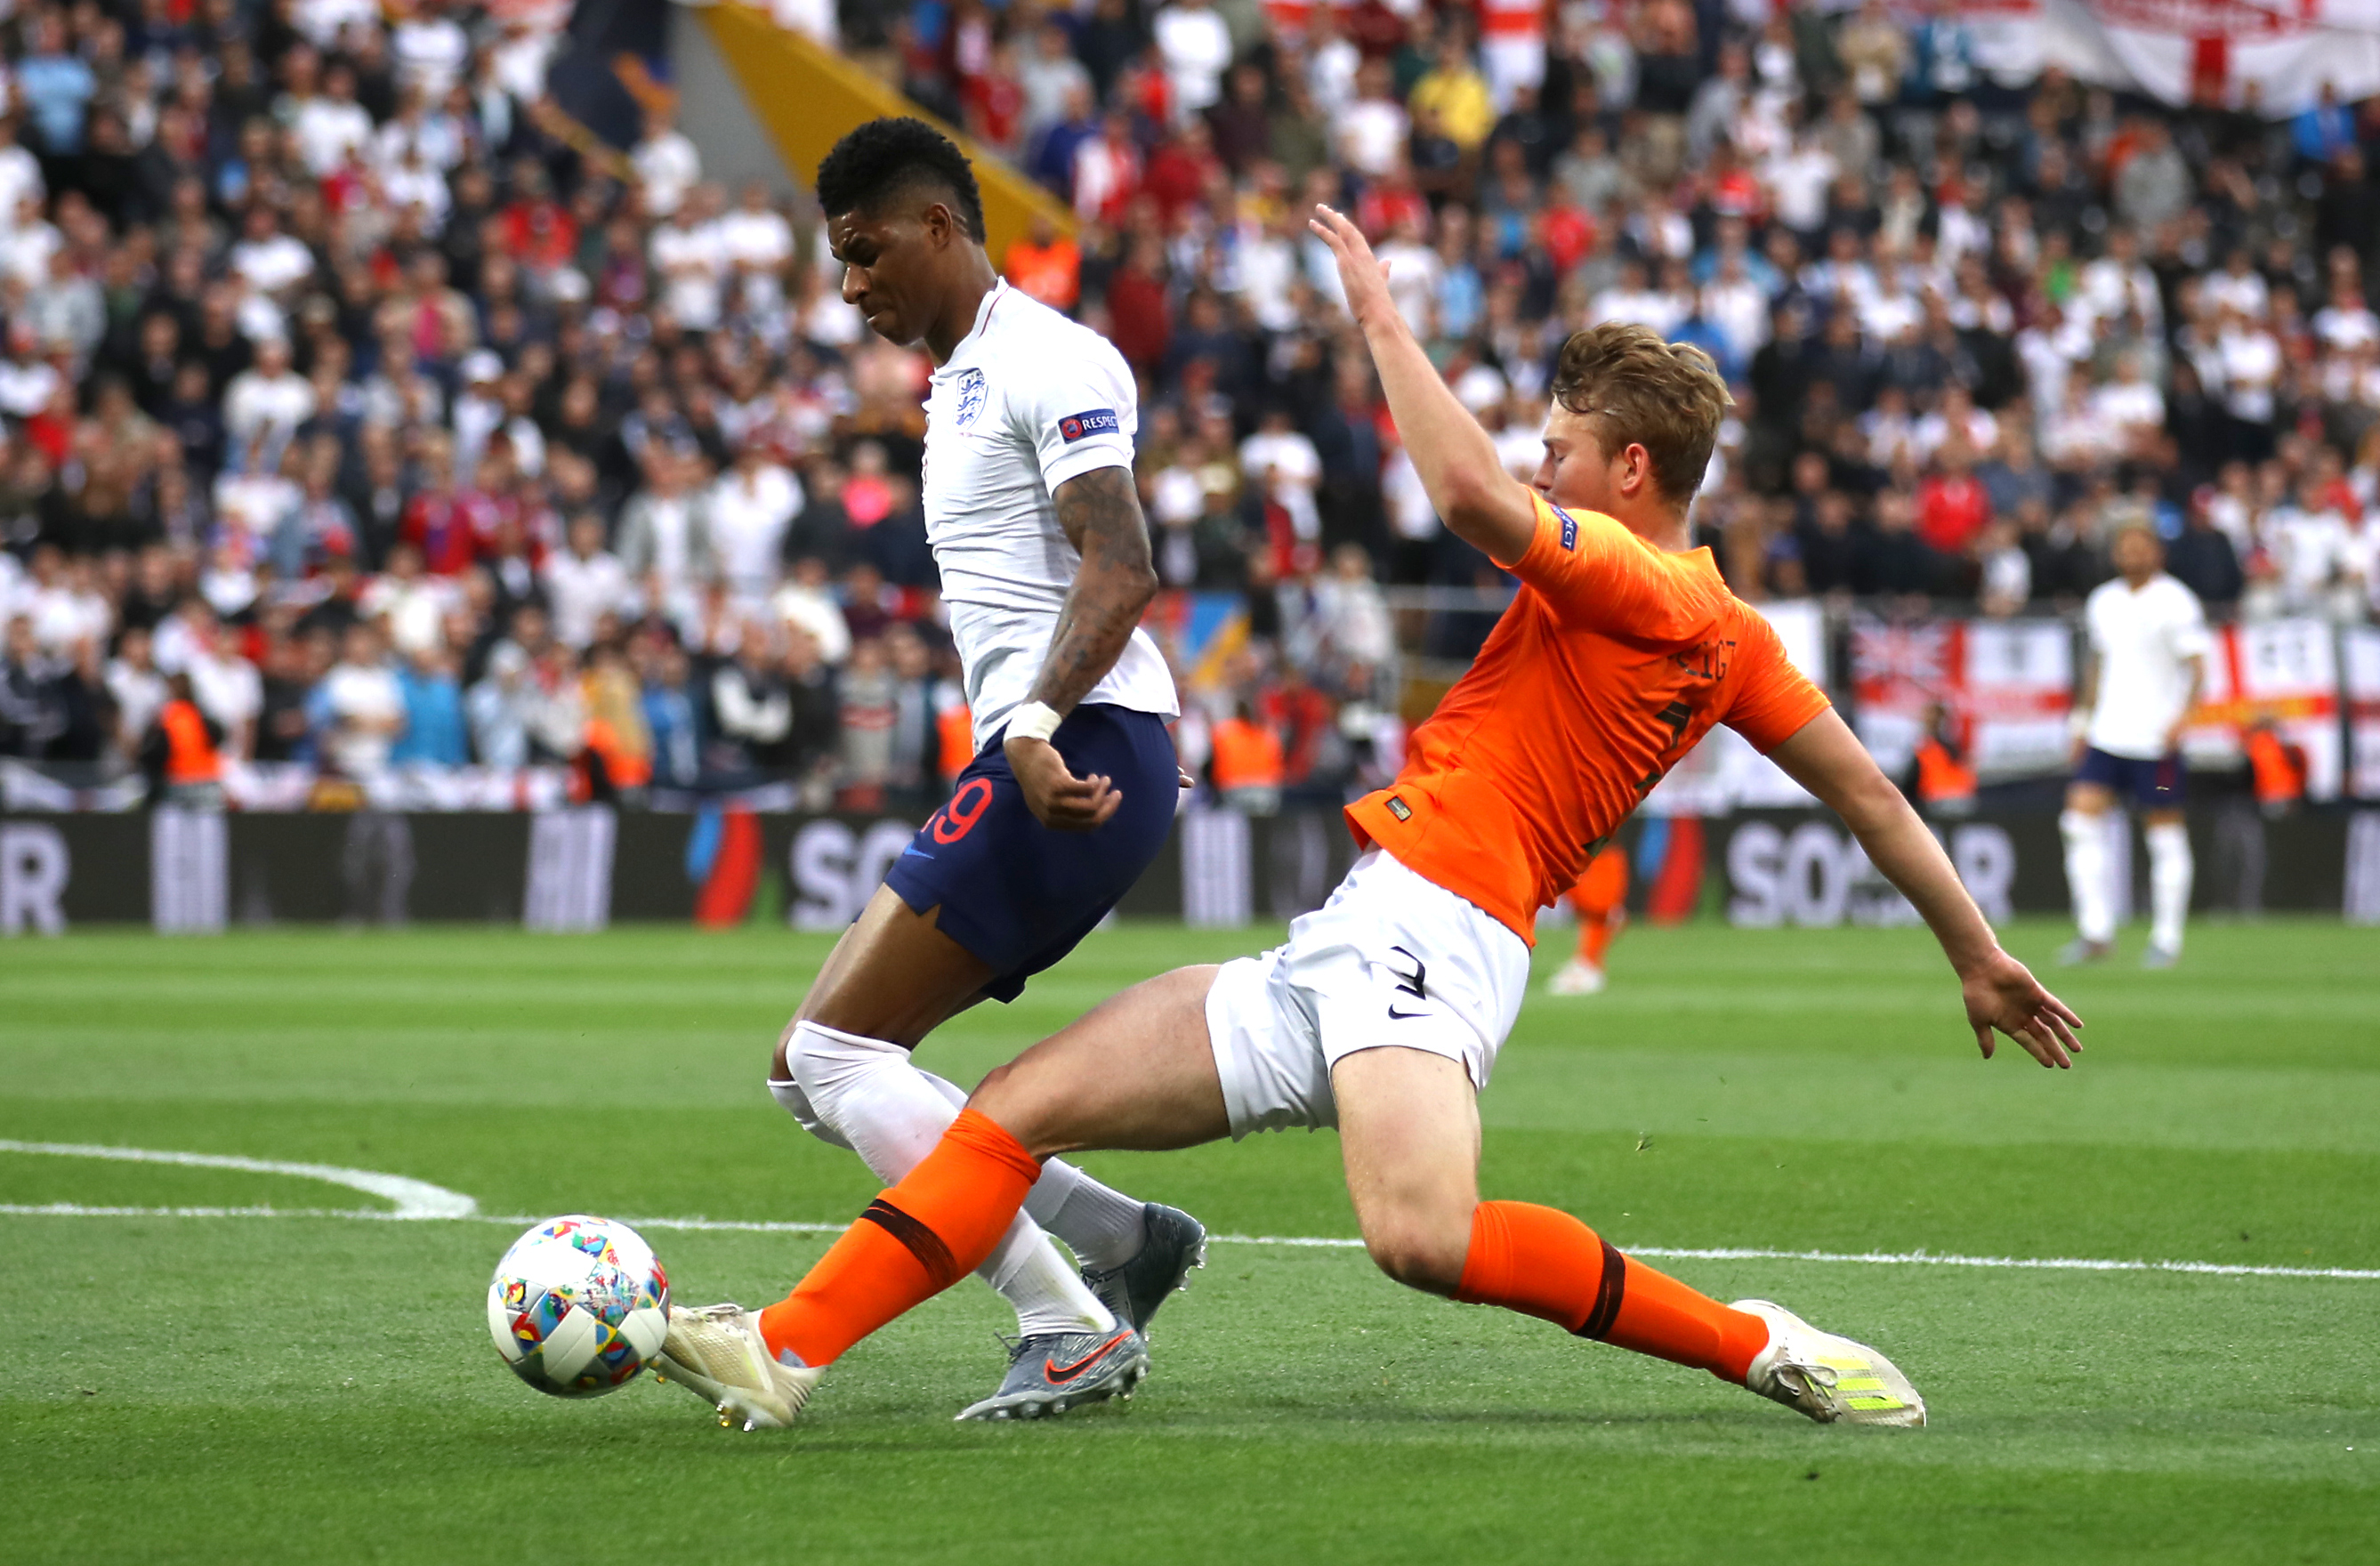 Rashford saw himself brought down by de Ligt for the penalty (Image Credit: PA)